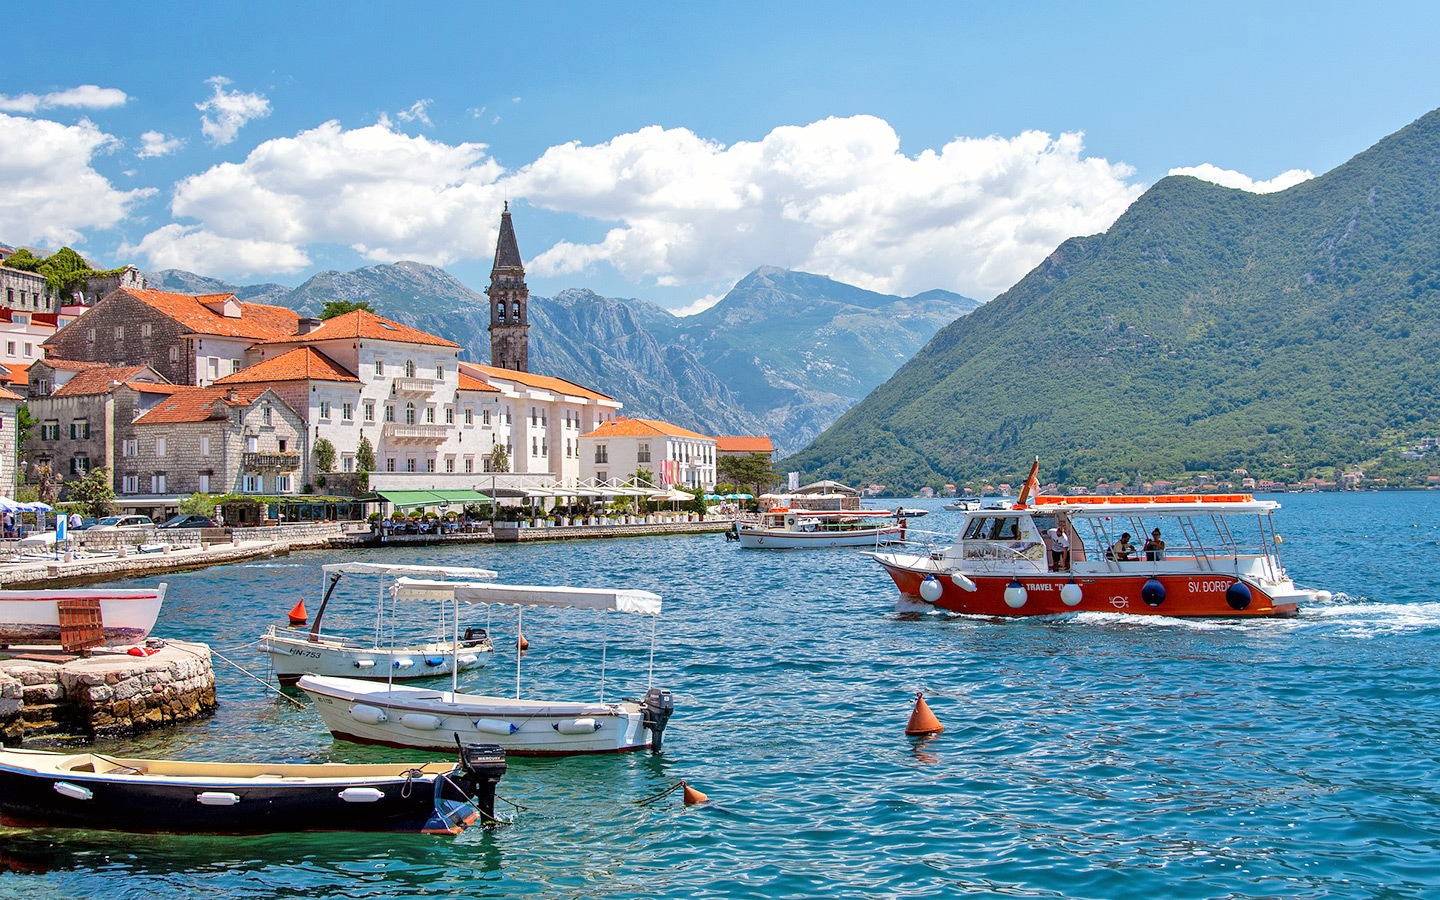 Boats in the harbour in Perast, Bay of Kotor